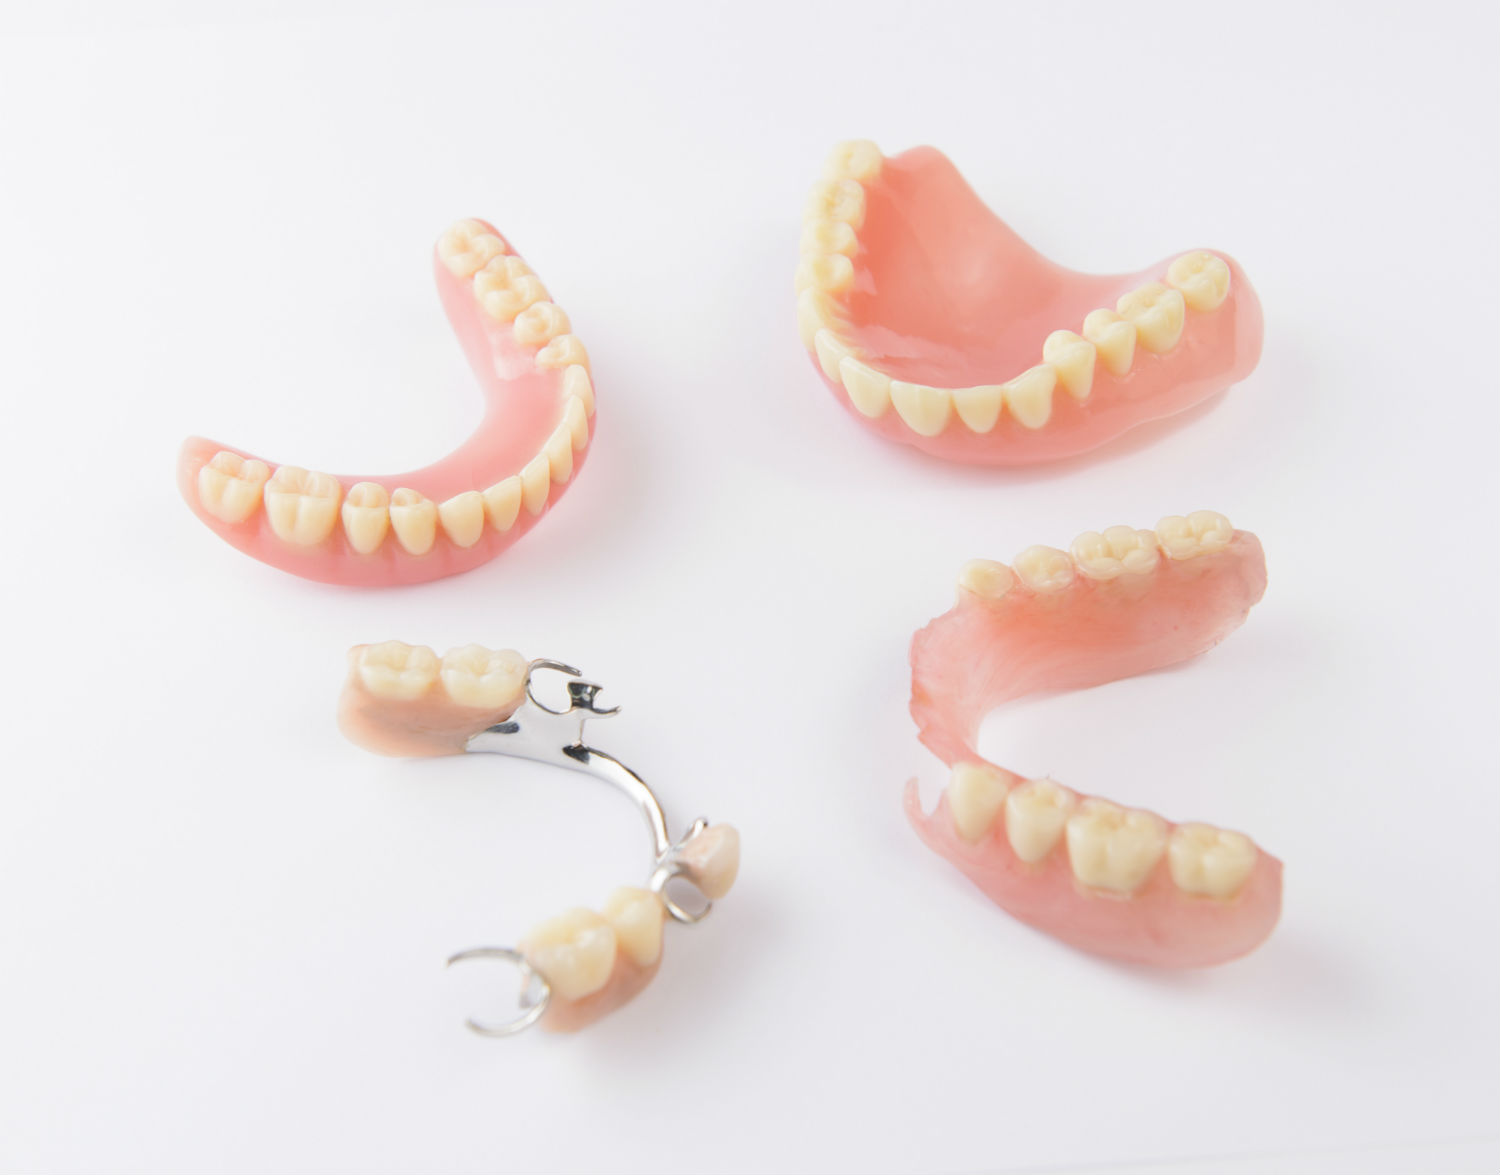 closeup of different types of dentures